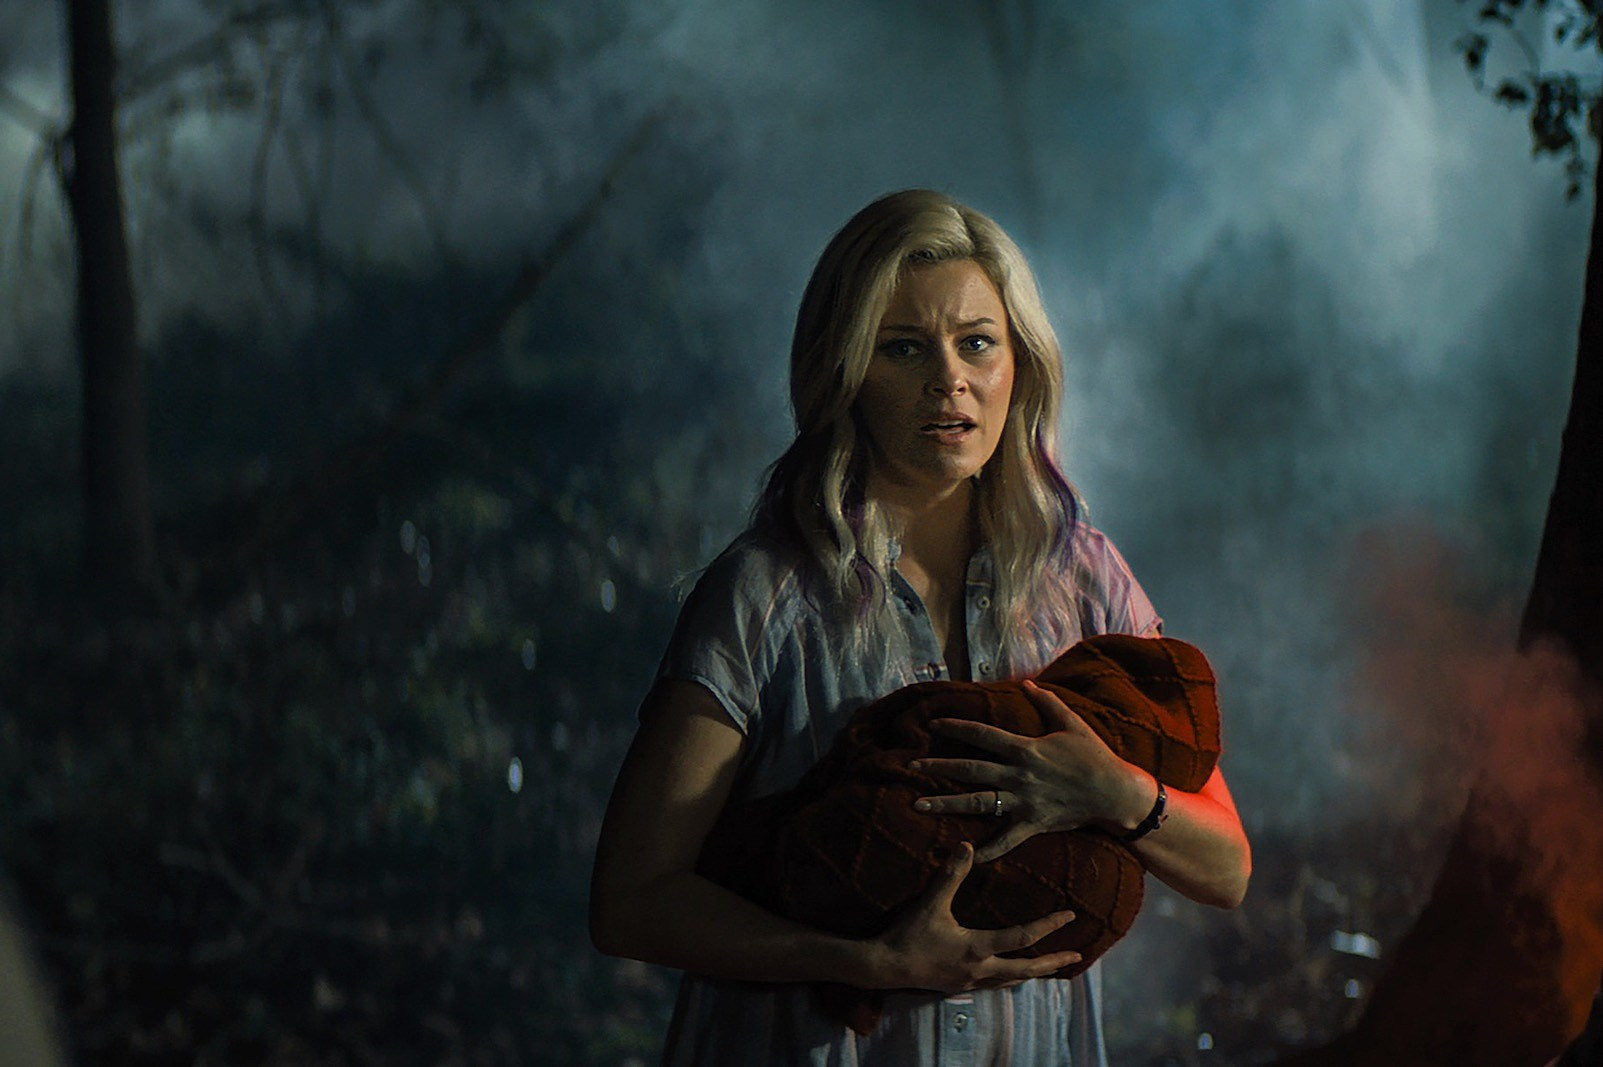 'Brightburn' Review: Superman Is Mighty Scary as a Slasher Villain